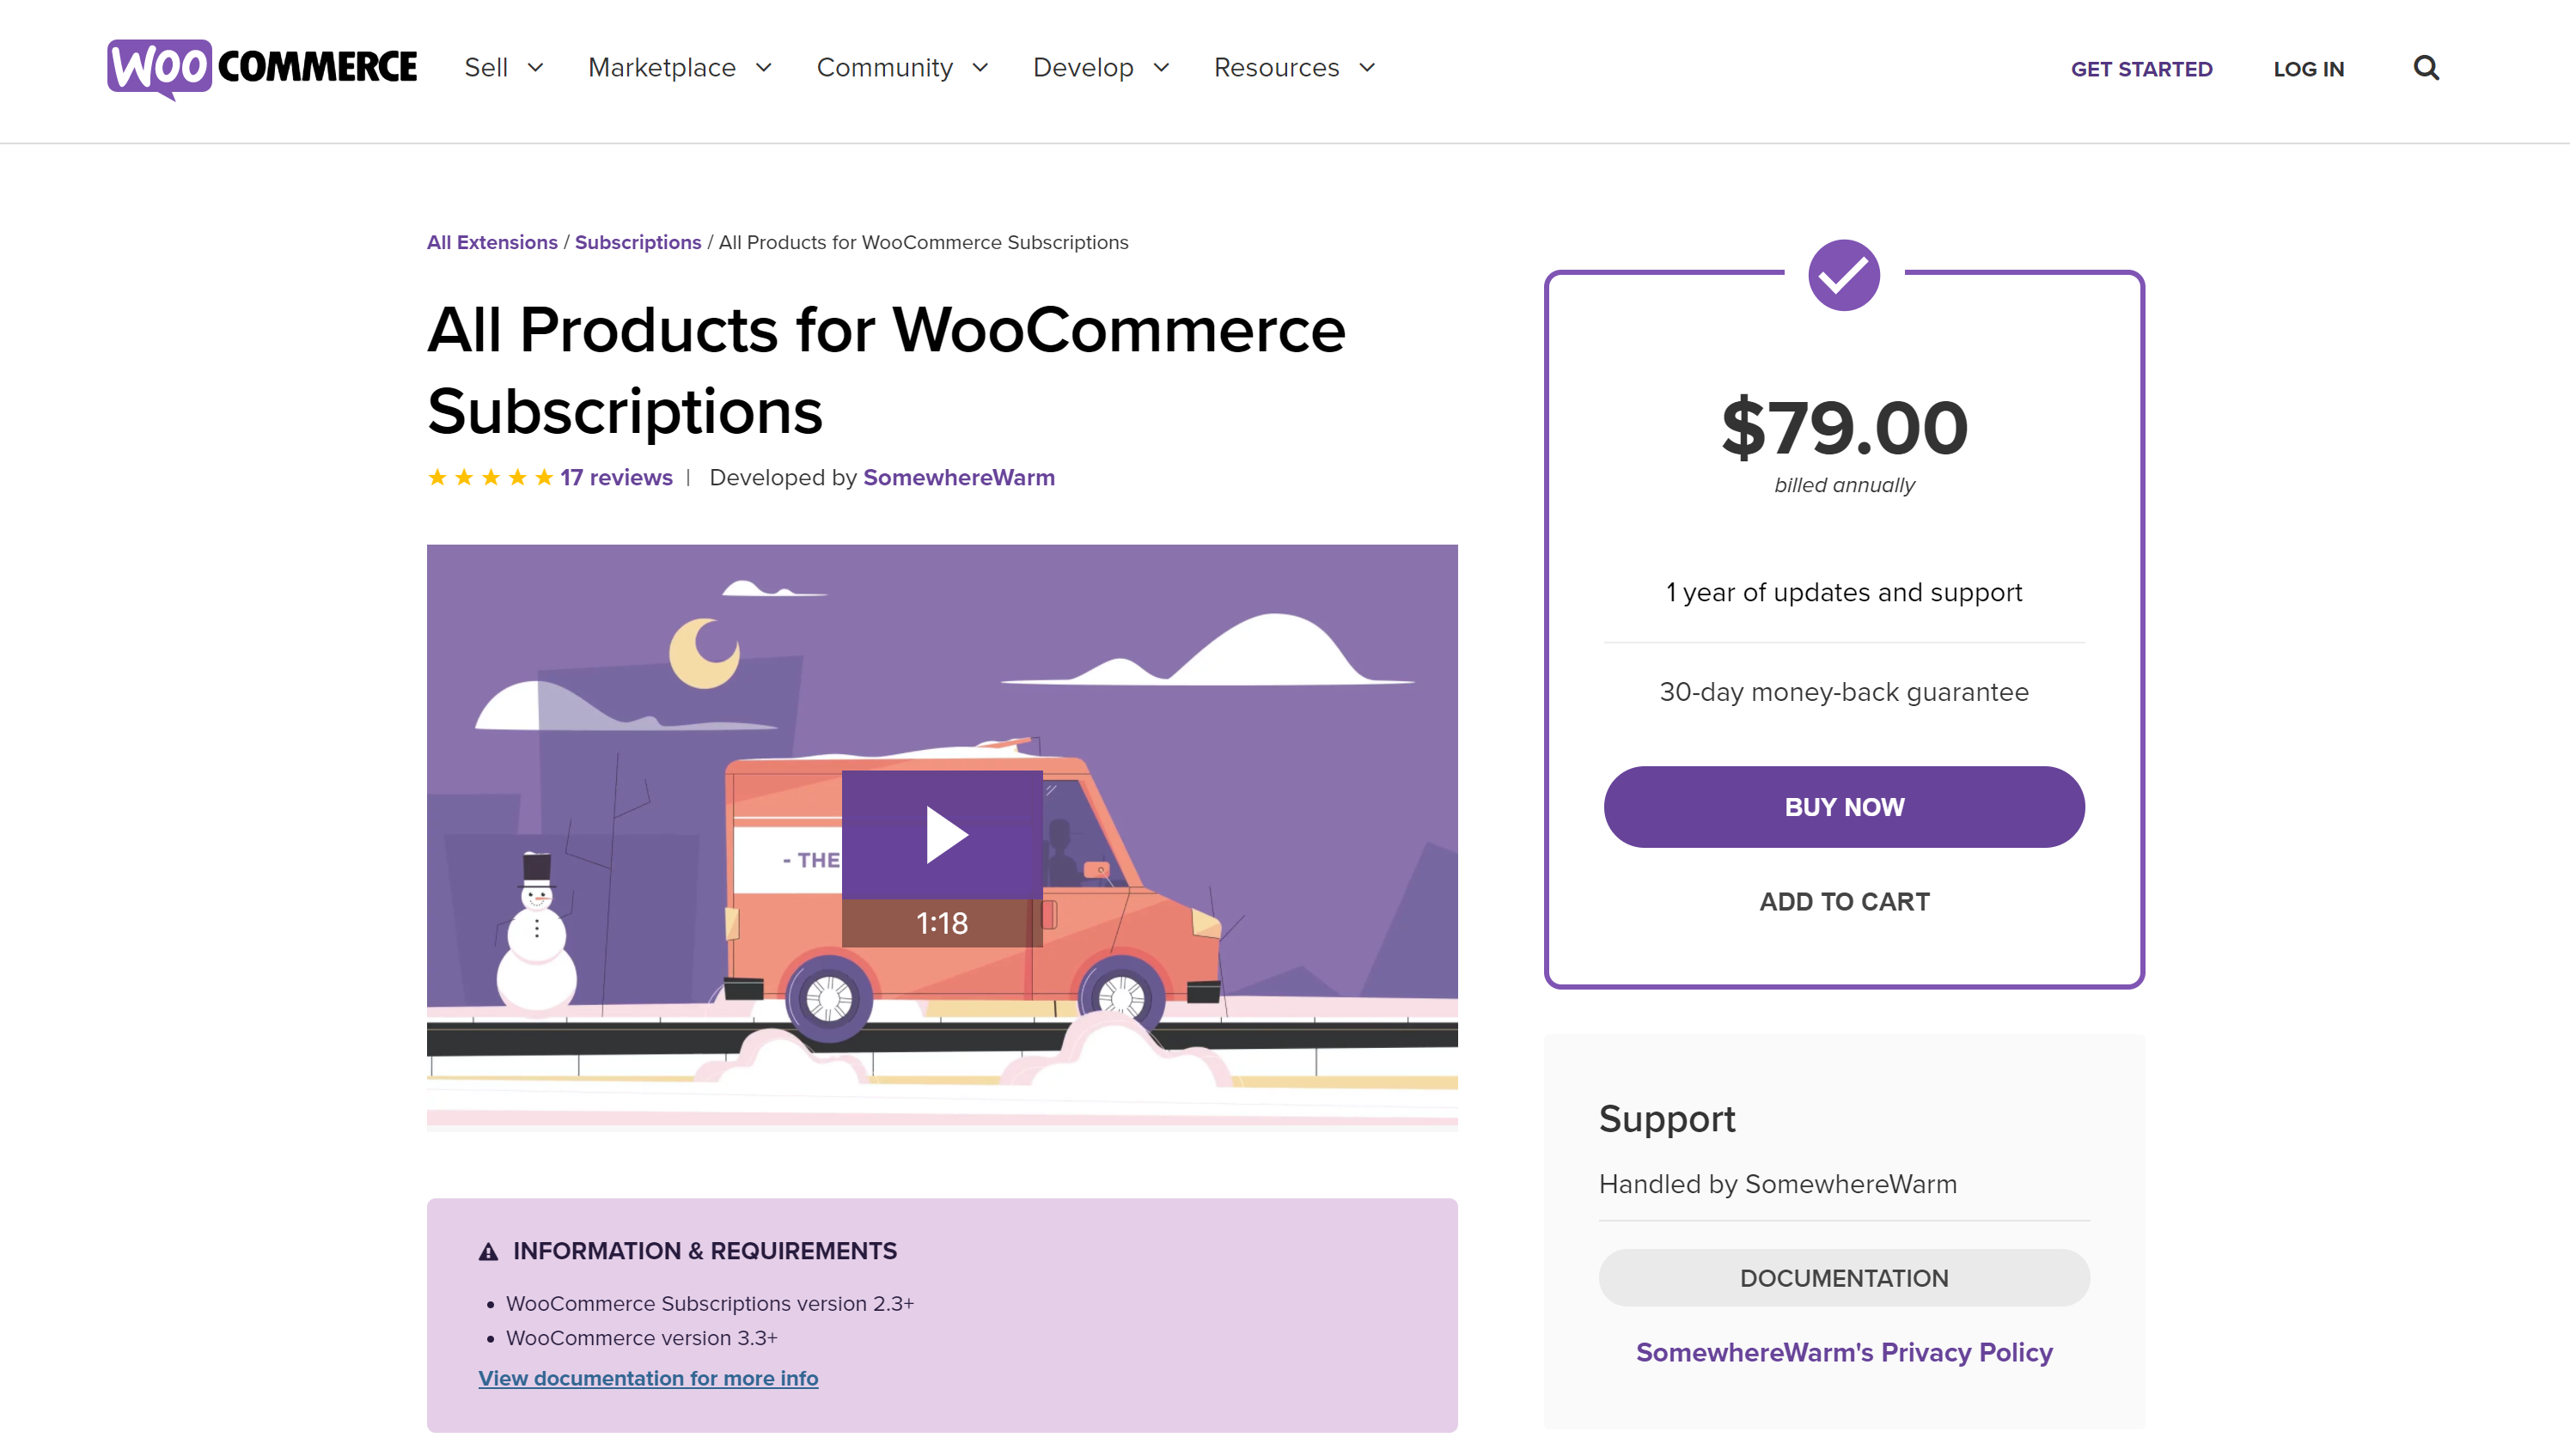 All Products for WooCommerce Subscriptions 3.1.24